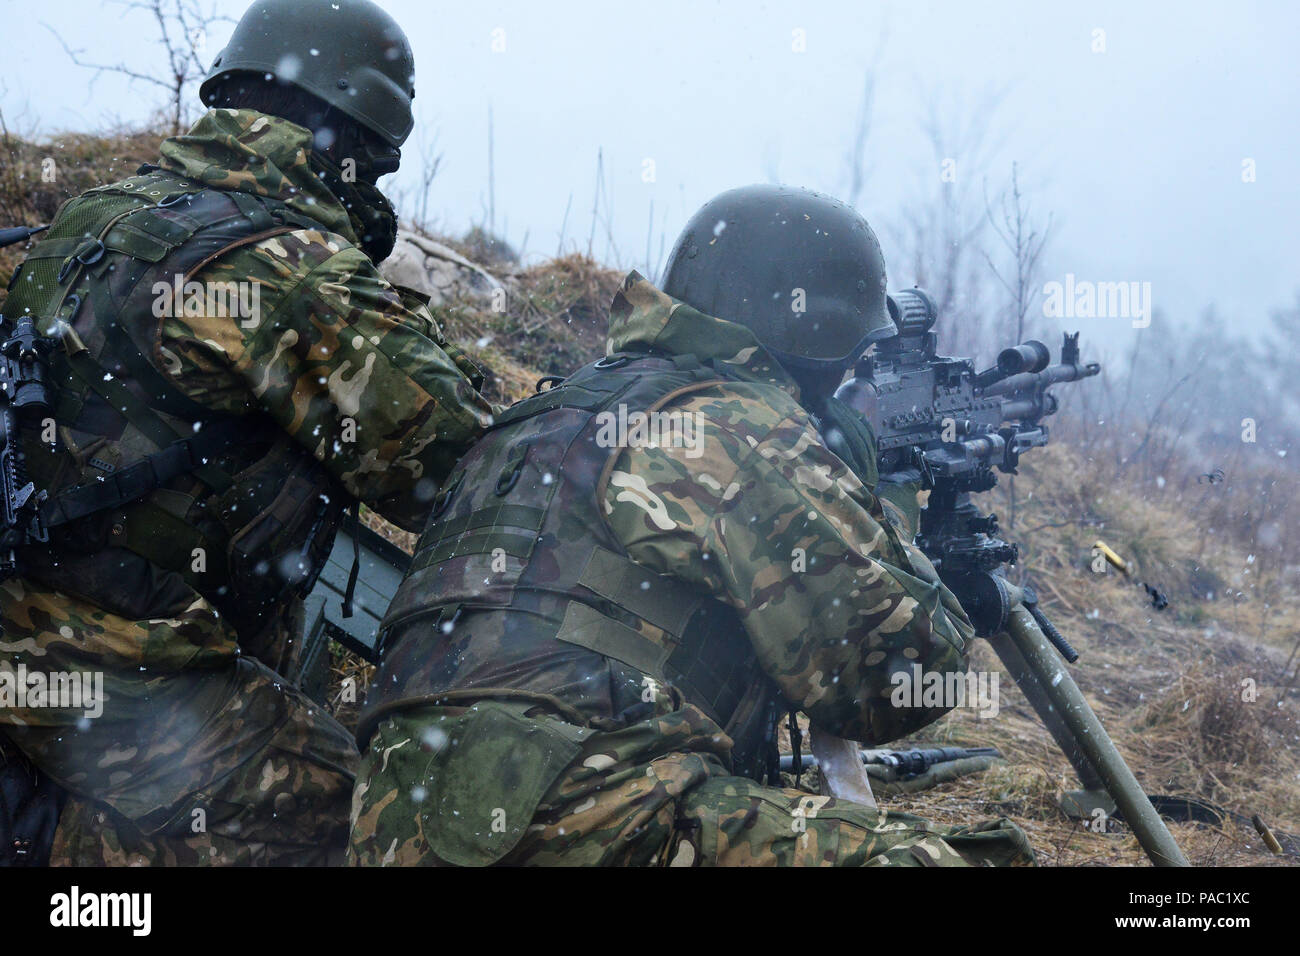 Slovenian army soldiers of 10th Infantry Regiment conduct a live